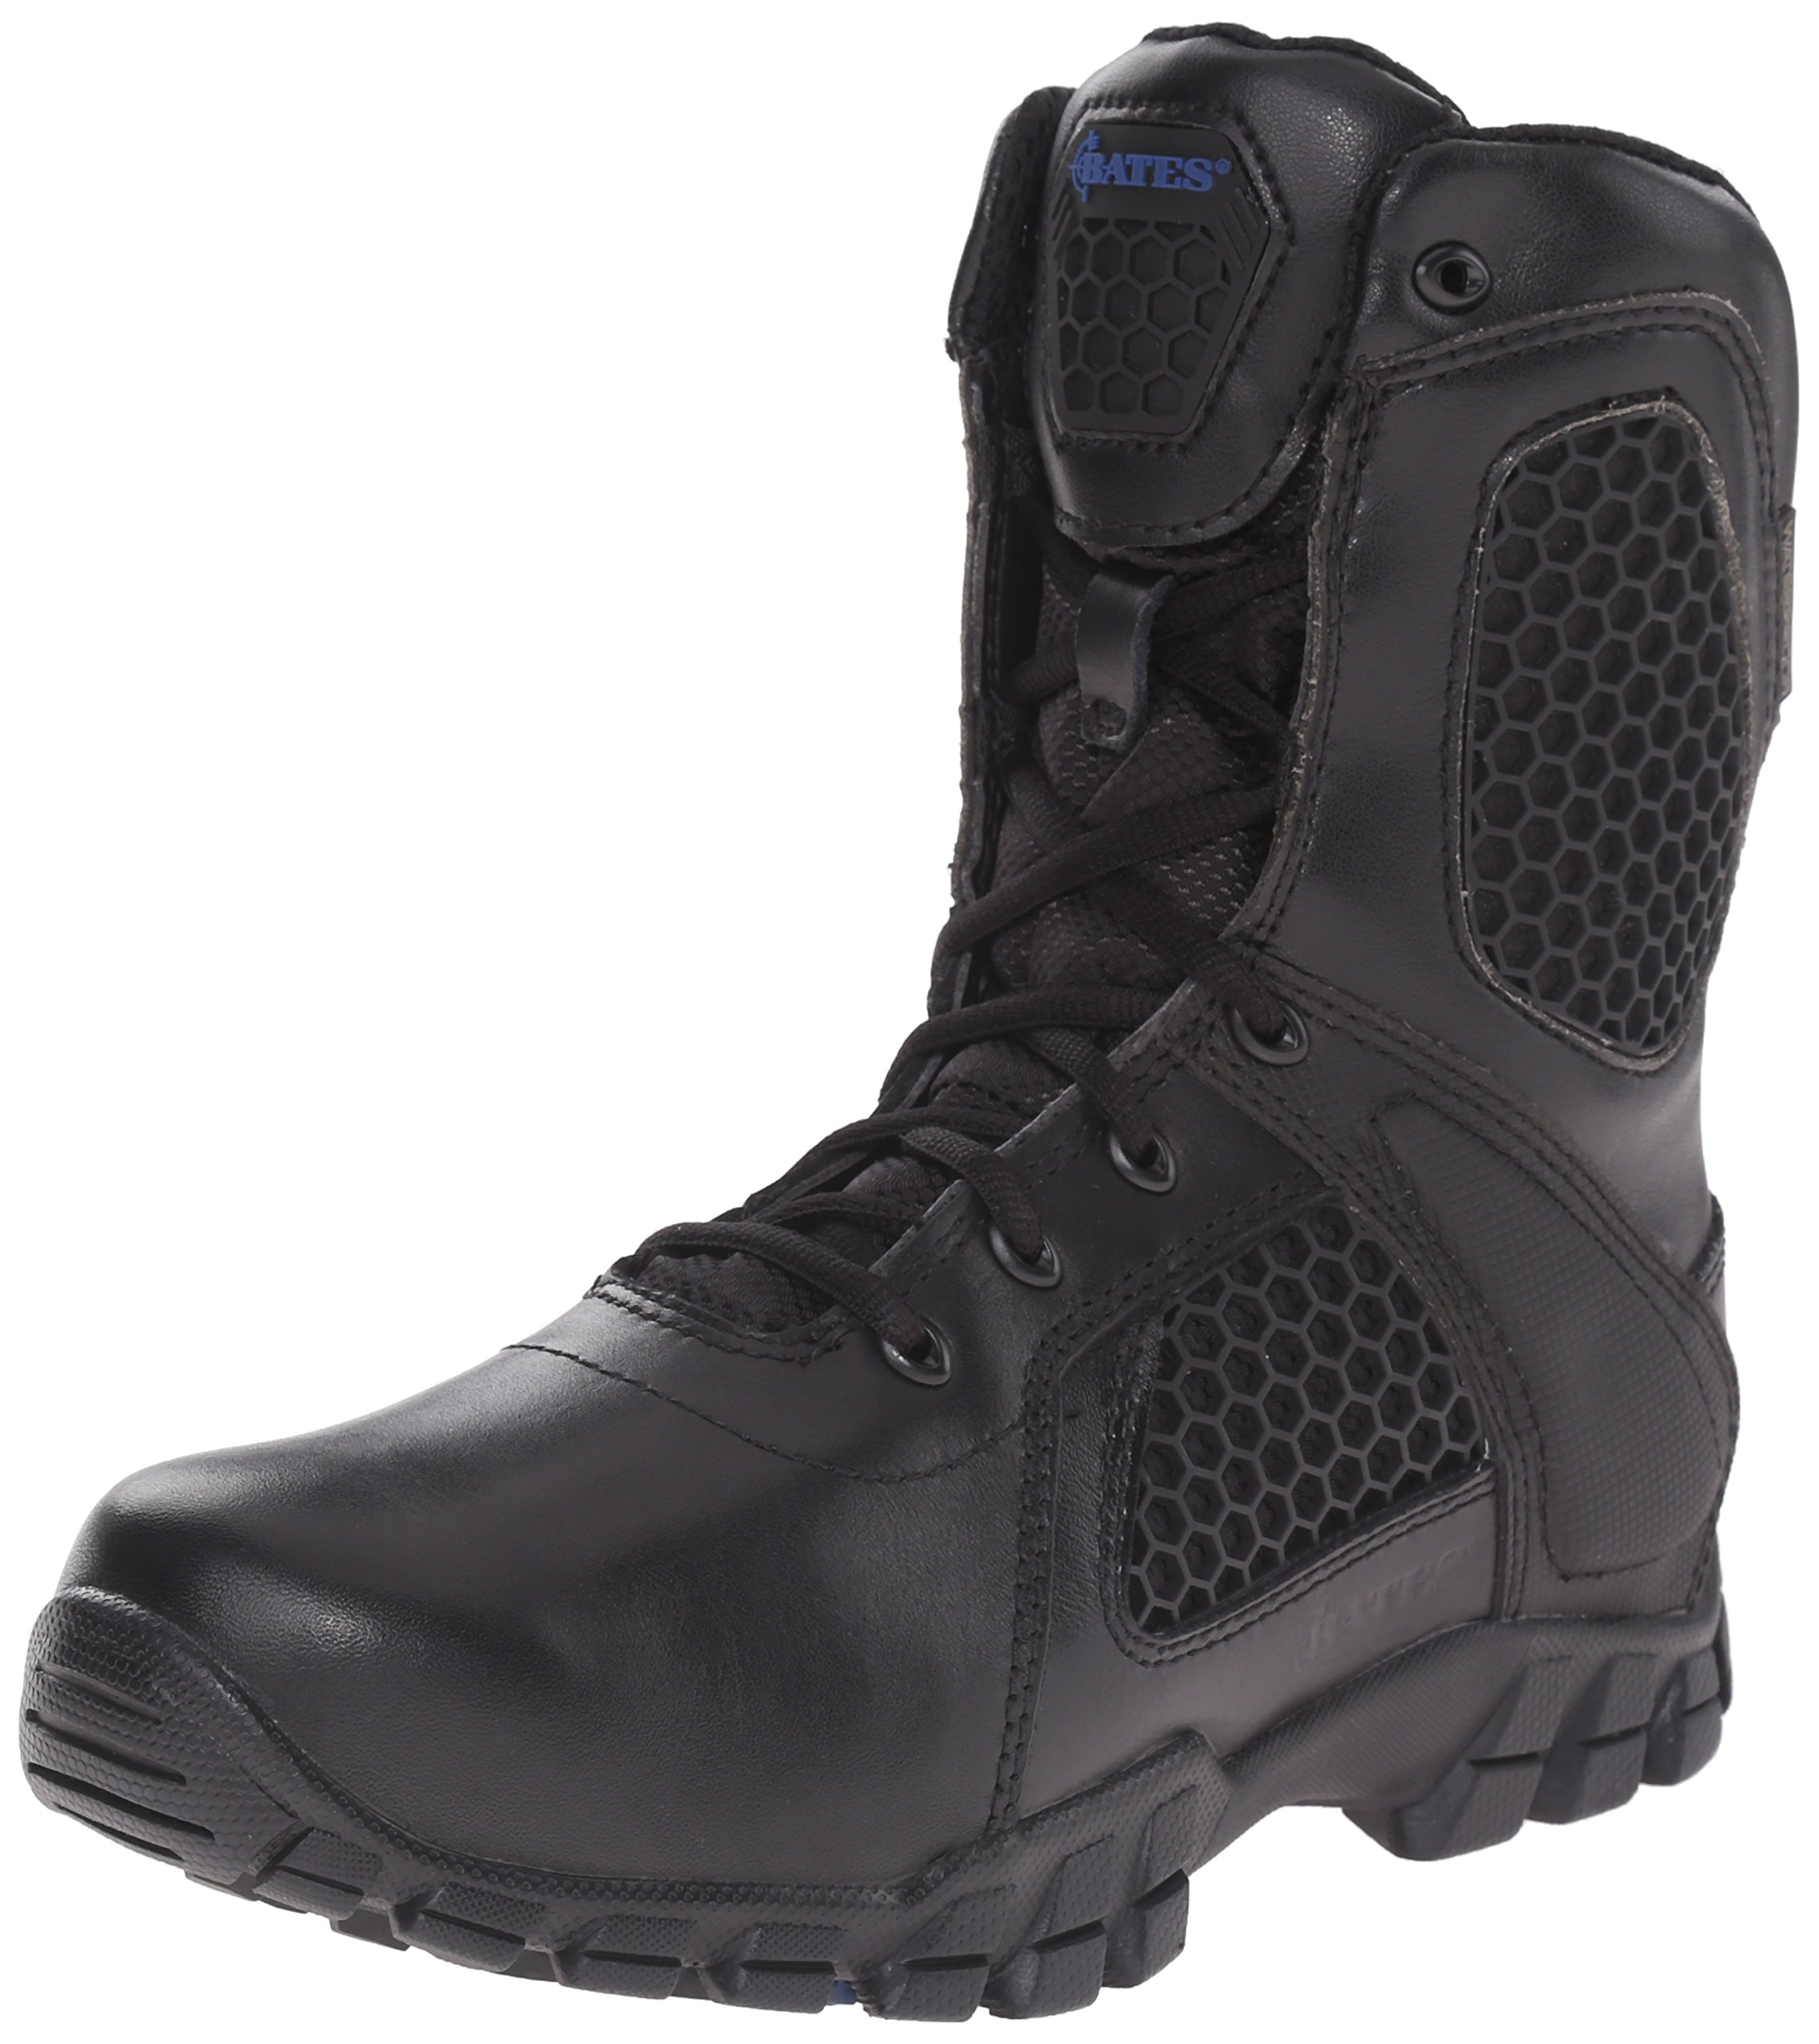 Bates Women's Strike 8 Inch Side Zip Military and Tactical Boot, Black, 7.5 M US by Bates